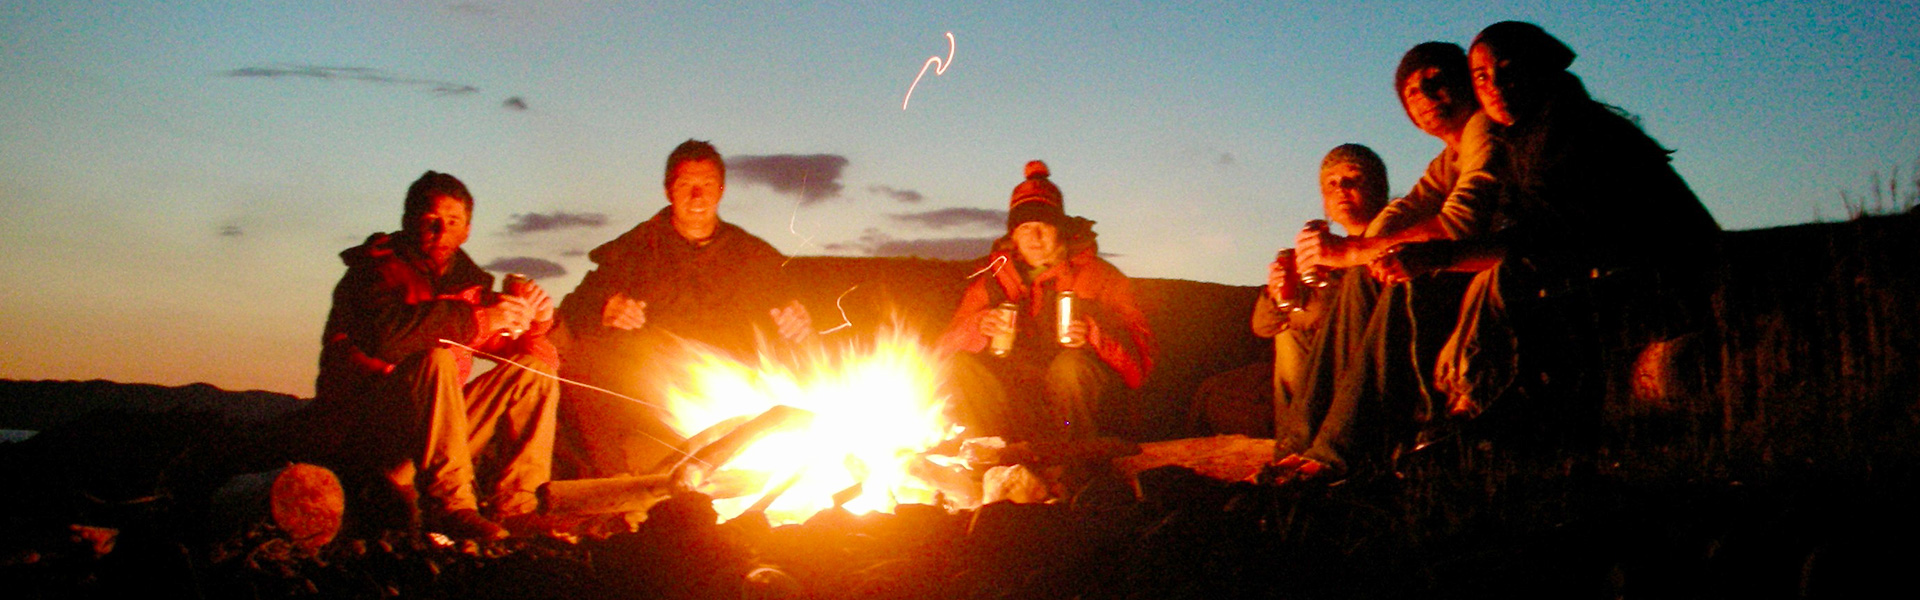 Our Wild Camping Holiday Base Camp   Wild Camping   Sea ...